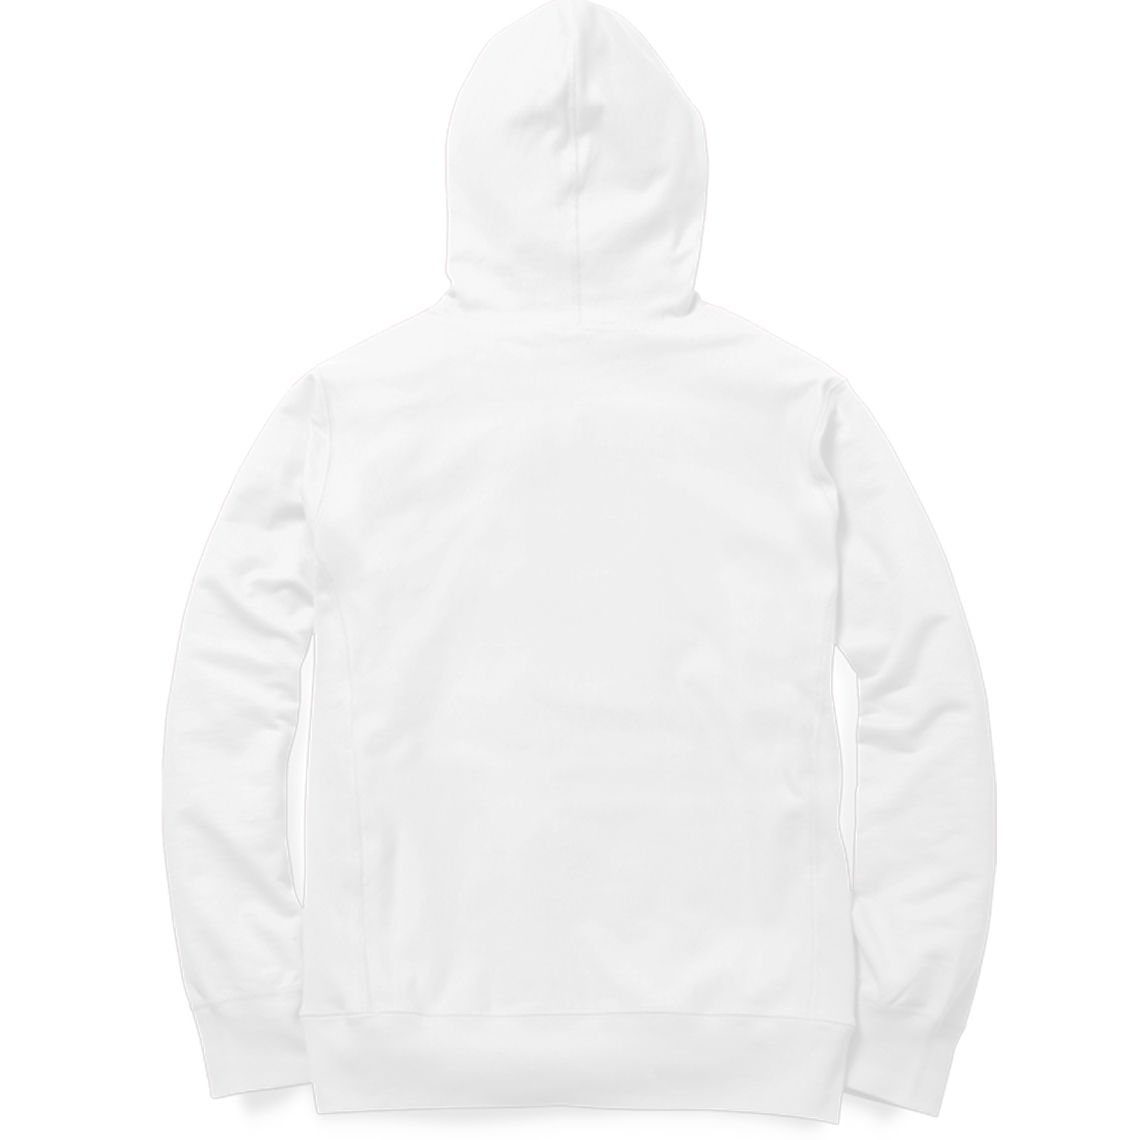 the taj mall hoodie white